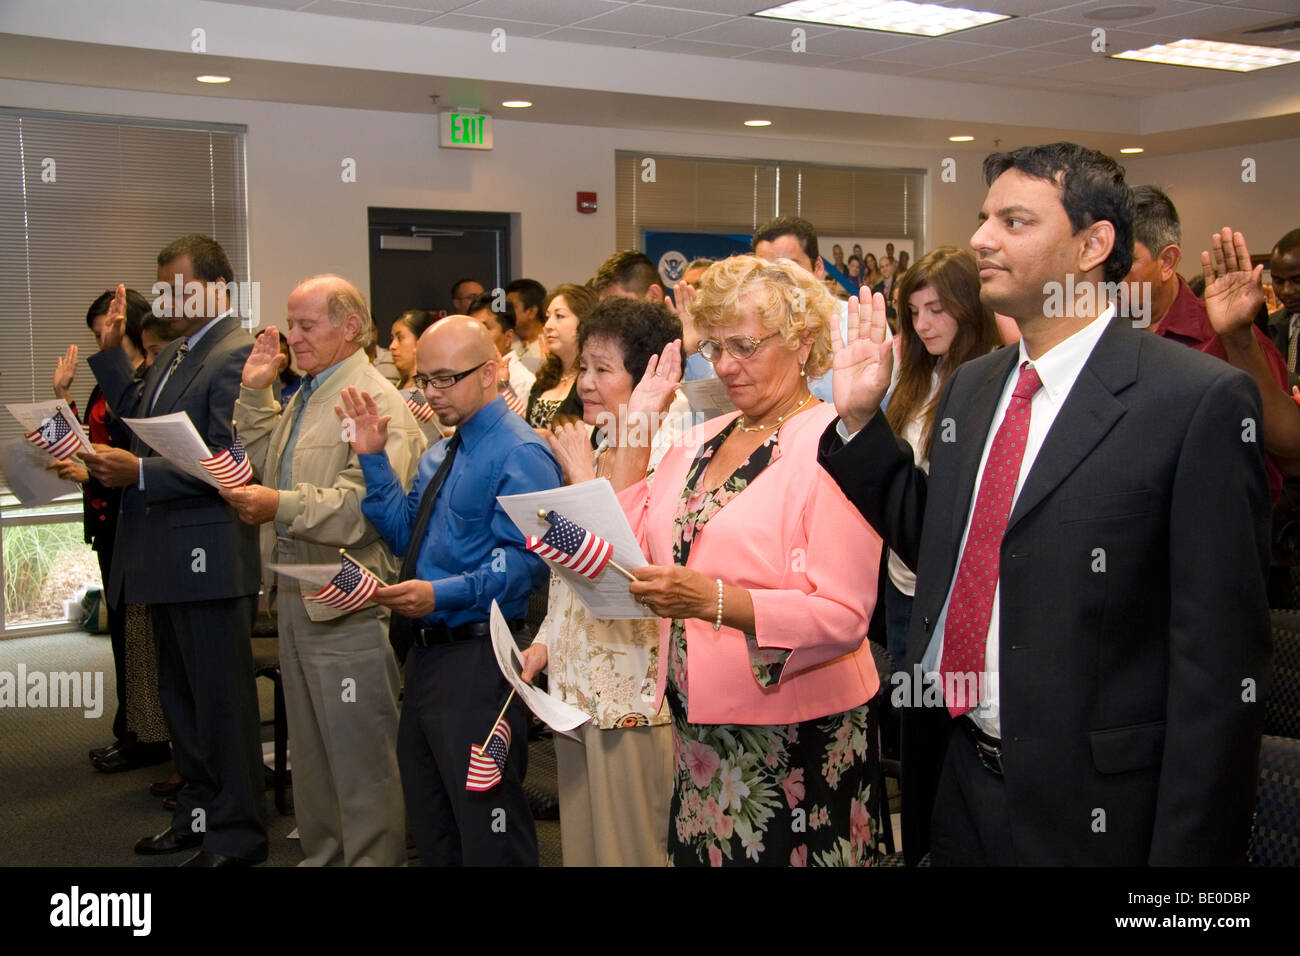 New United States citizens raise their right hand for citizenship oath ceremony in Idaho, USA. - Stock Image